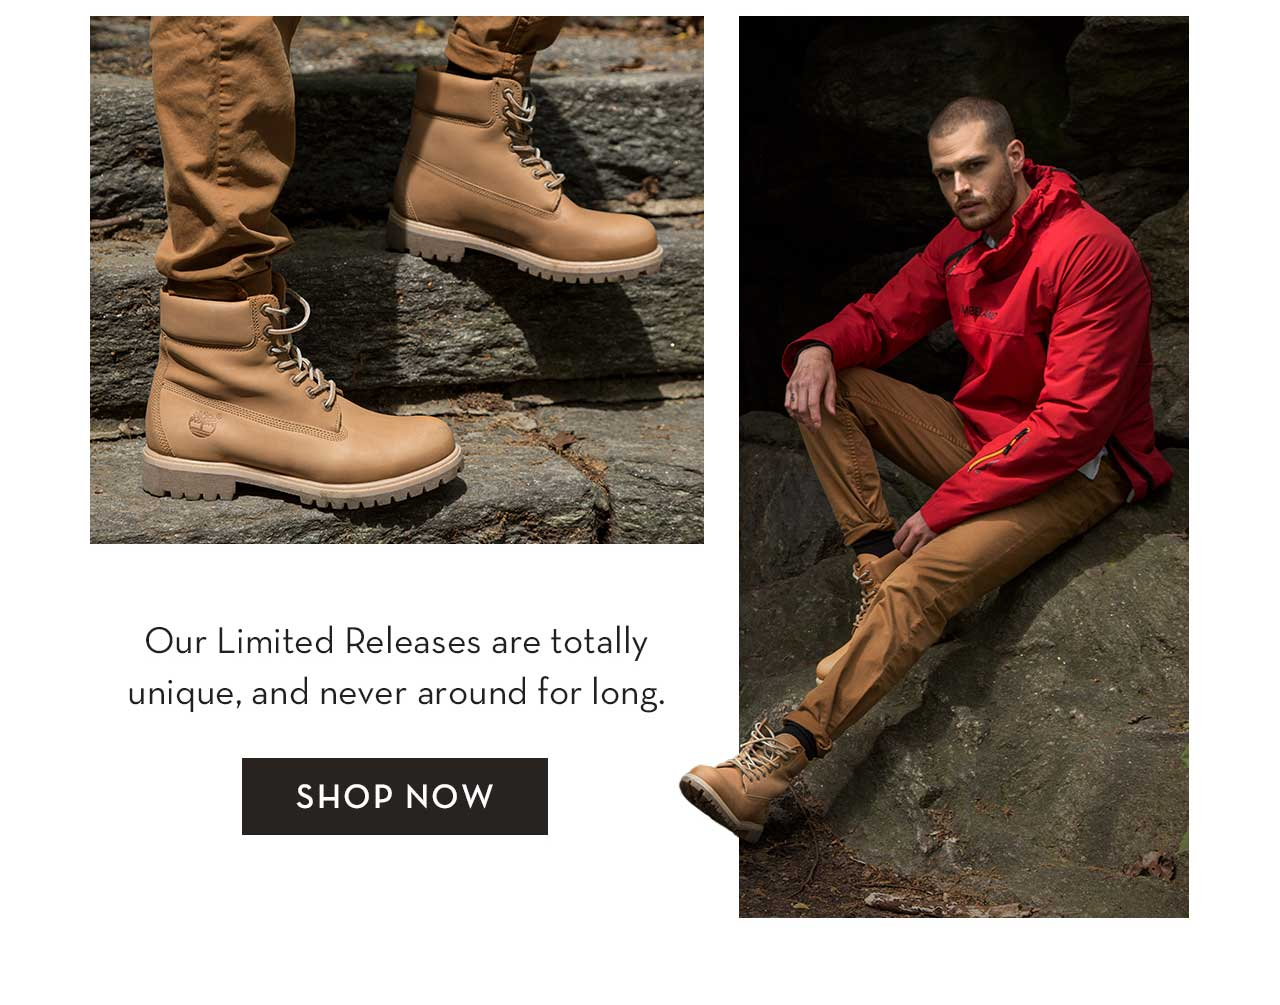 Our Limited Releases are totally unique, and never around for long. Shop Now